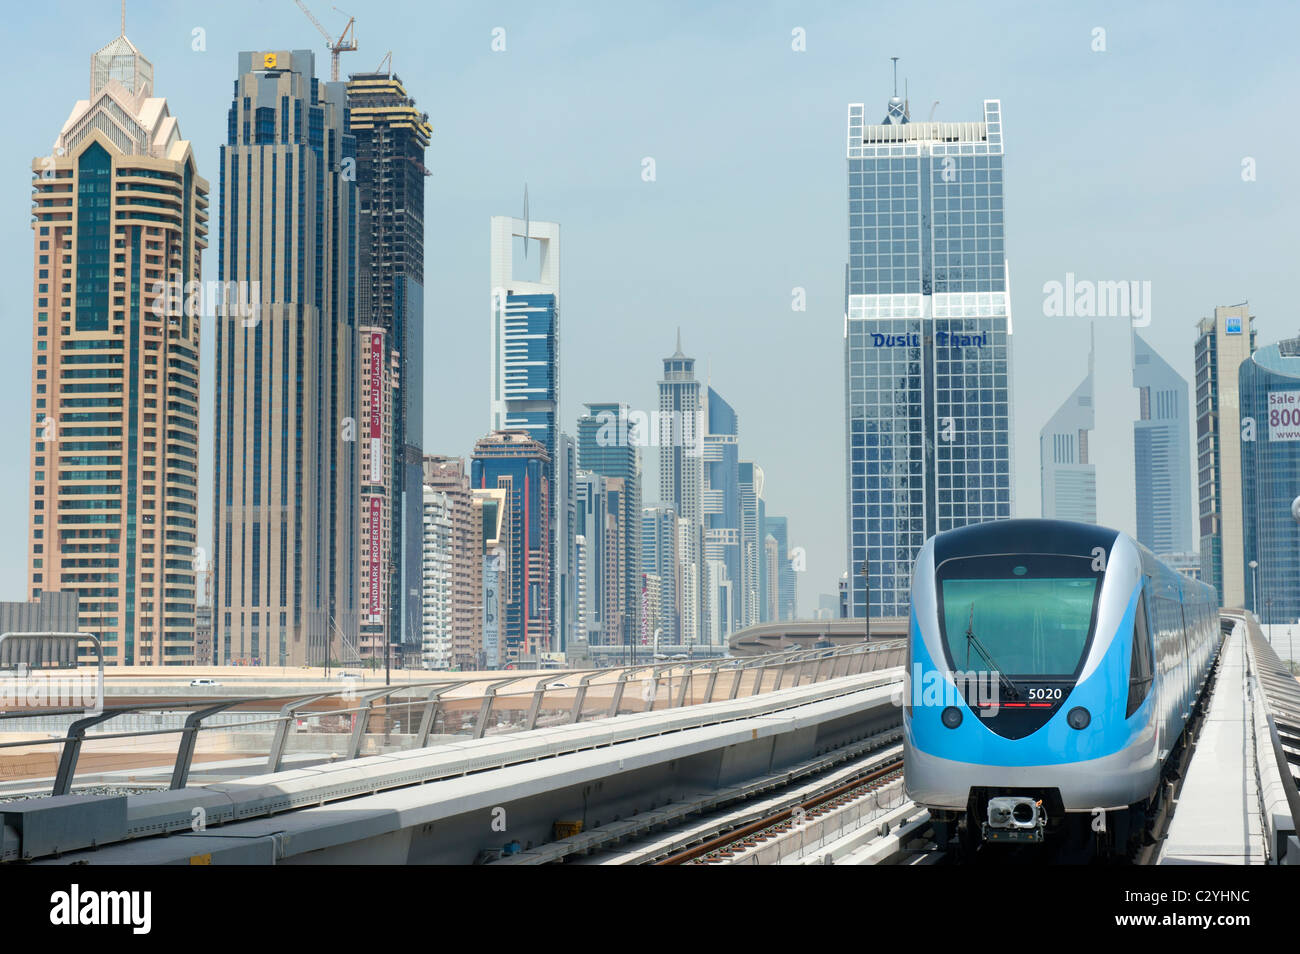 View of Dubai metro train and office towers in financial district of Dubai United Arab Emirates UAE - Stock Image